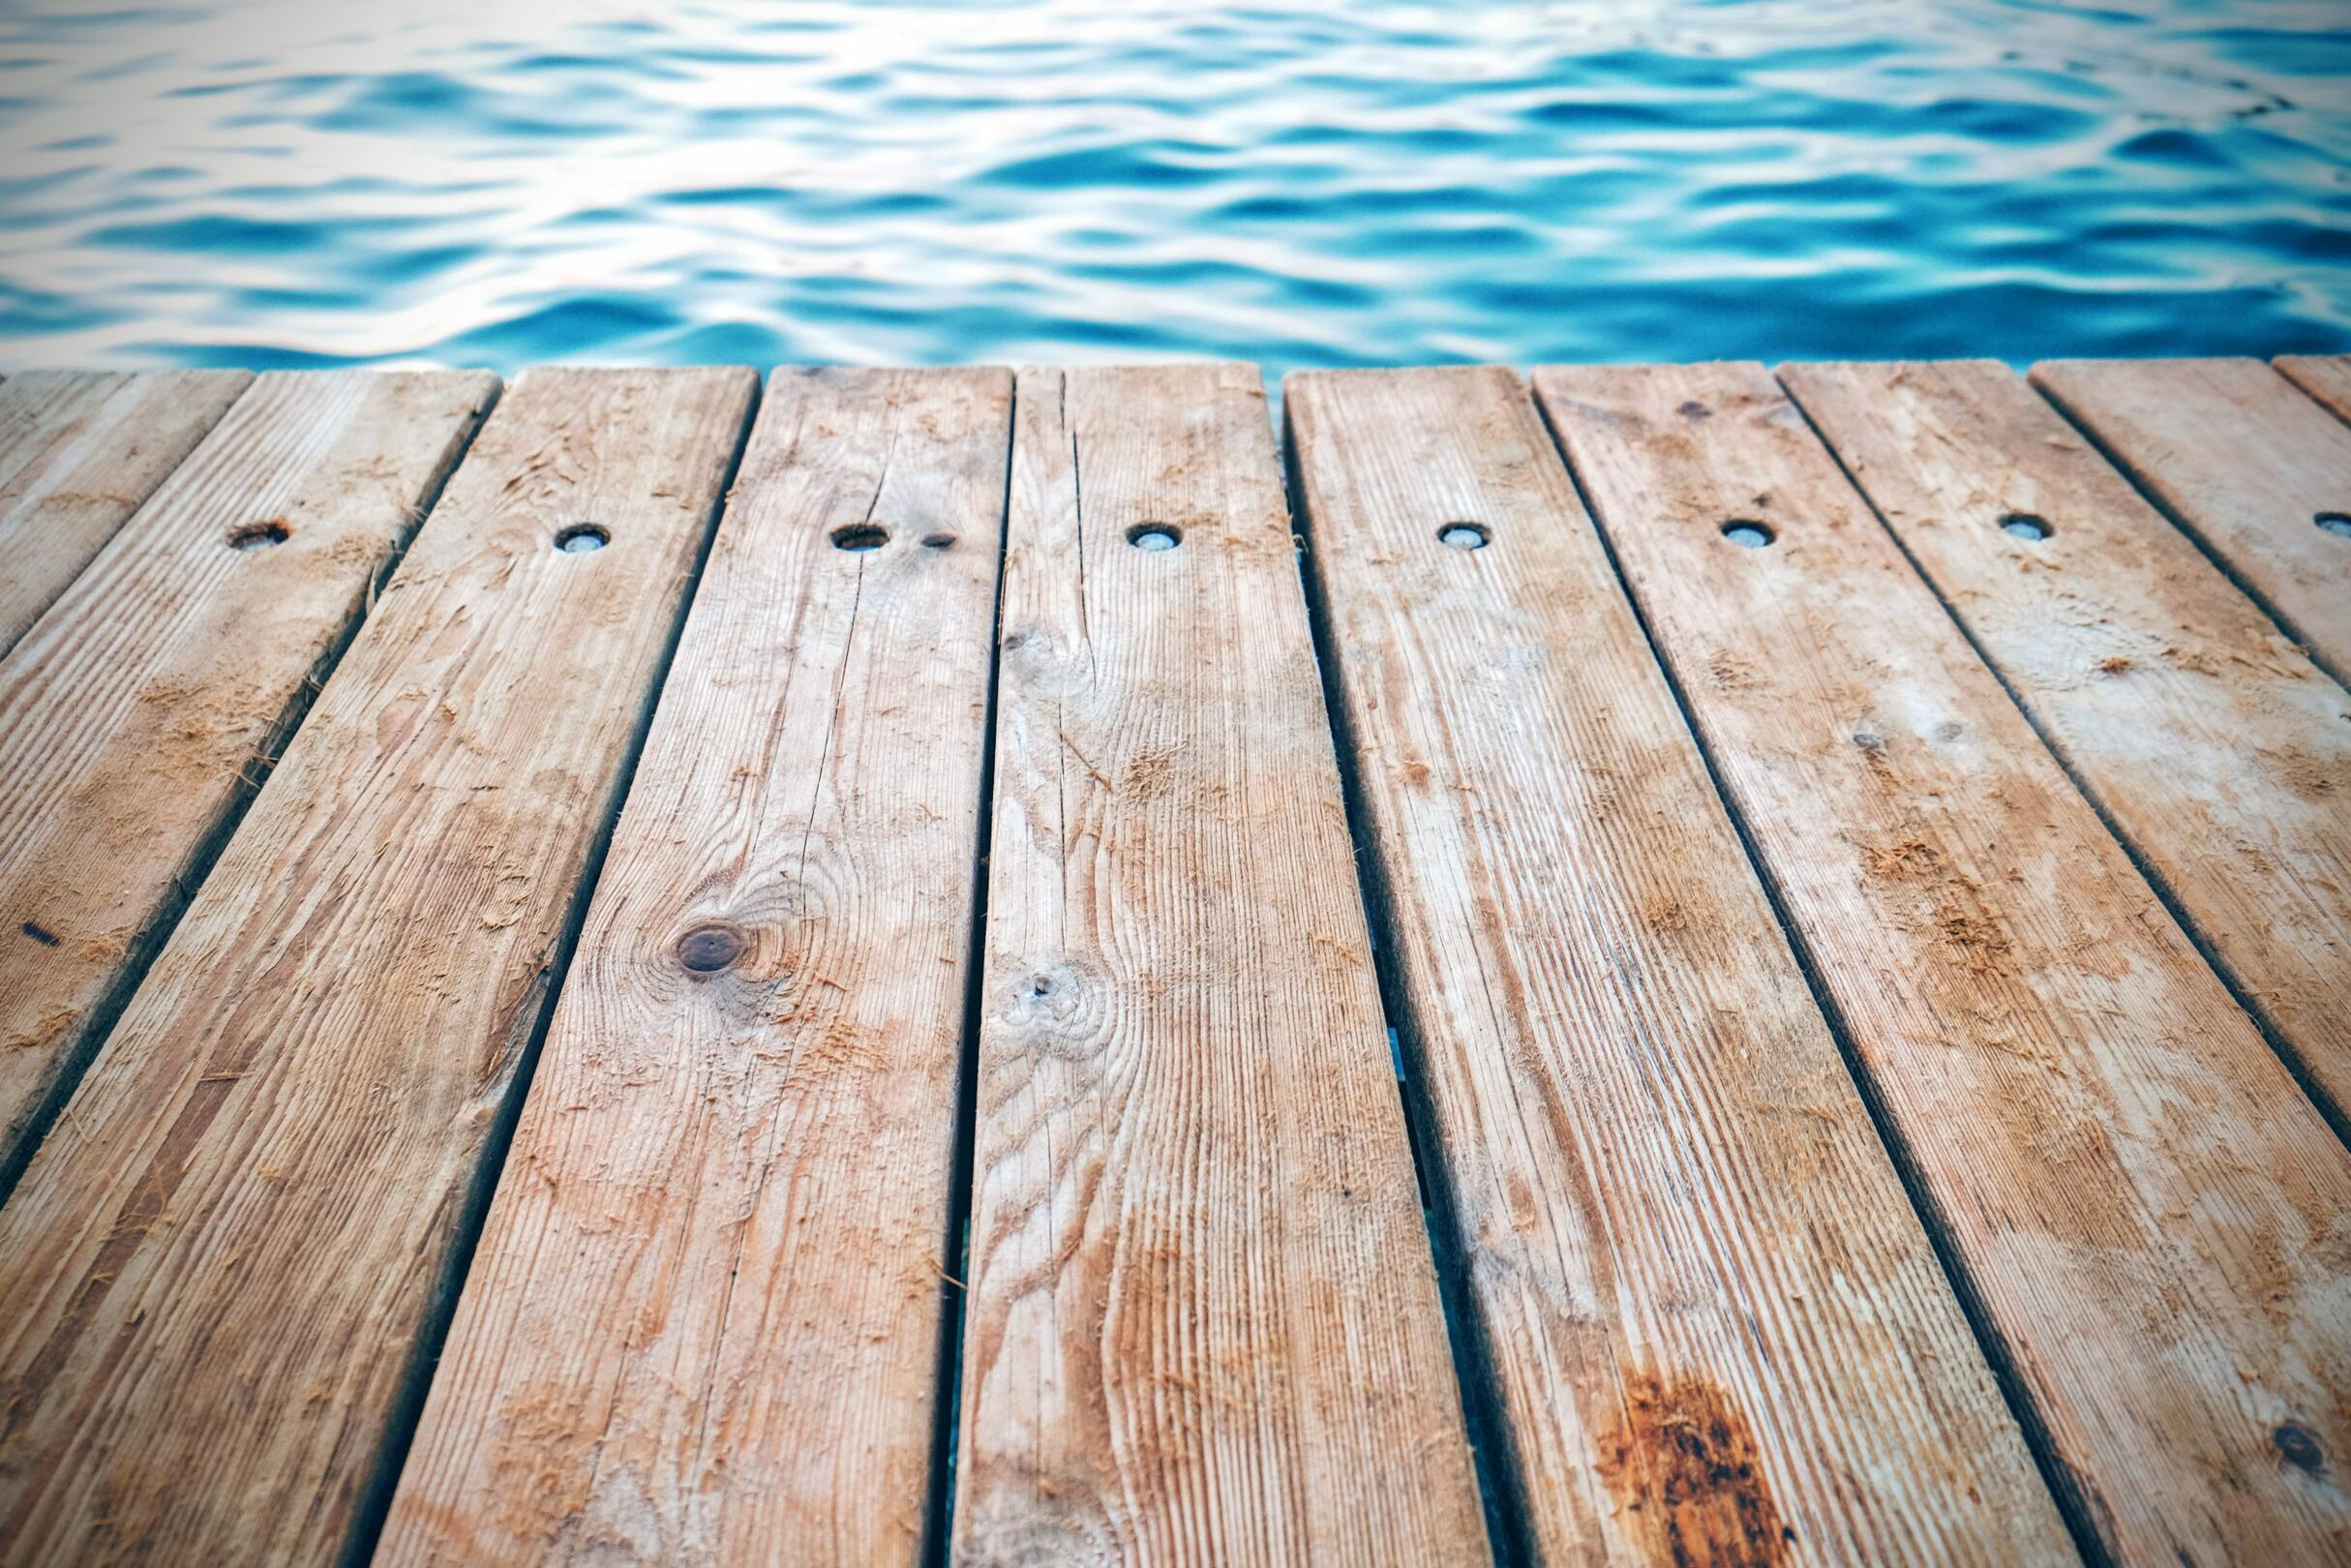 Wooden deck at the water's edge.